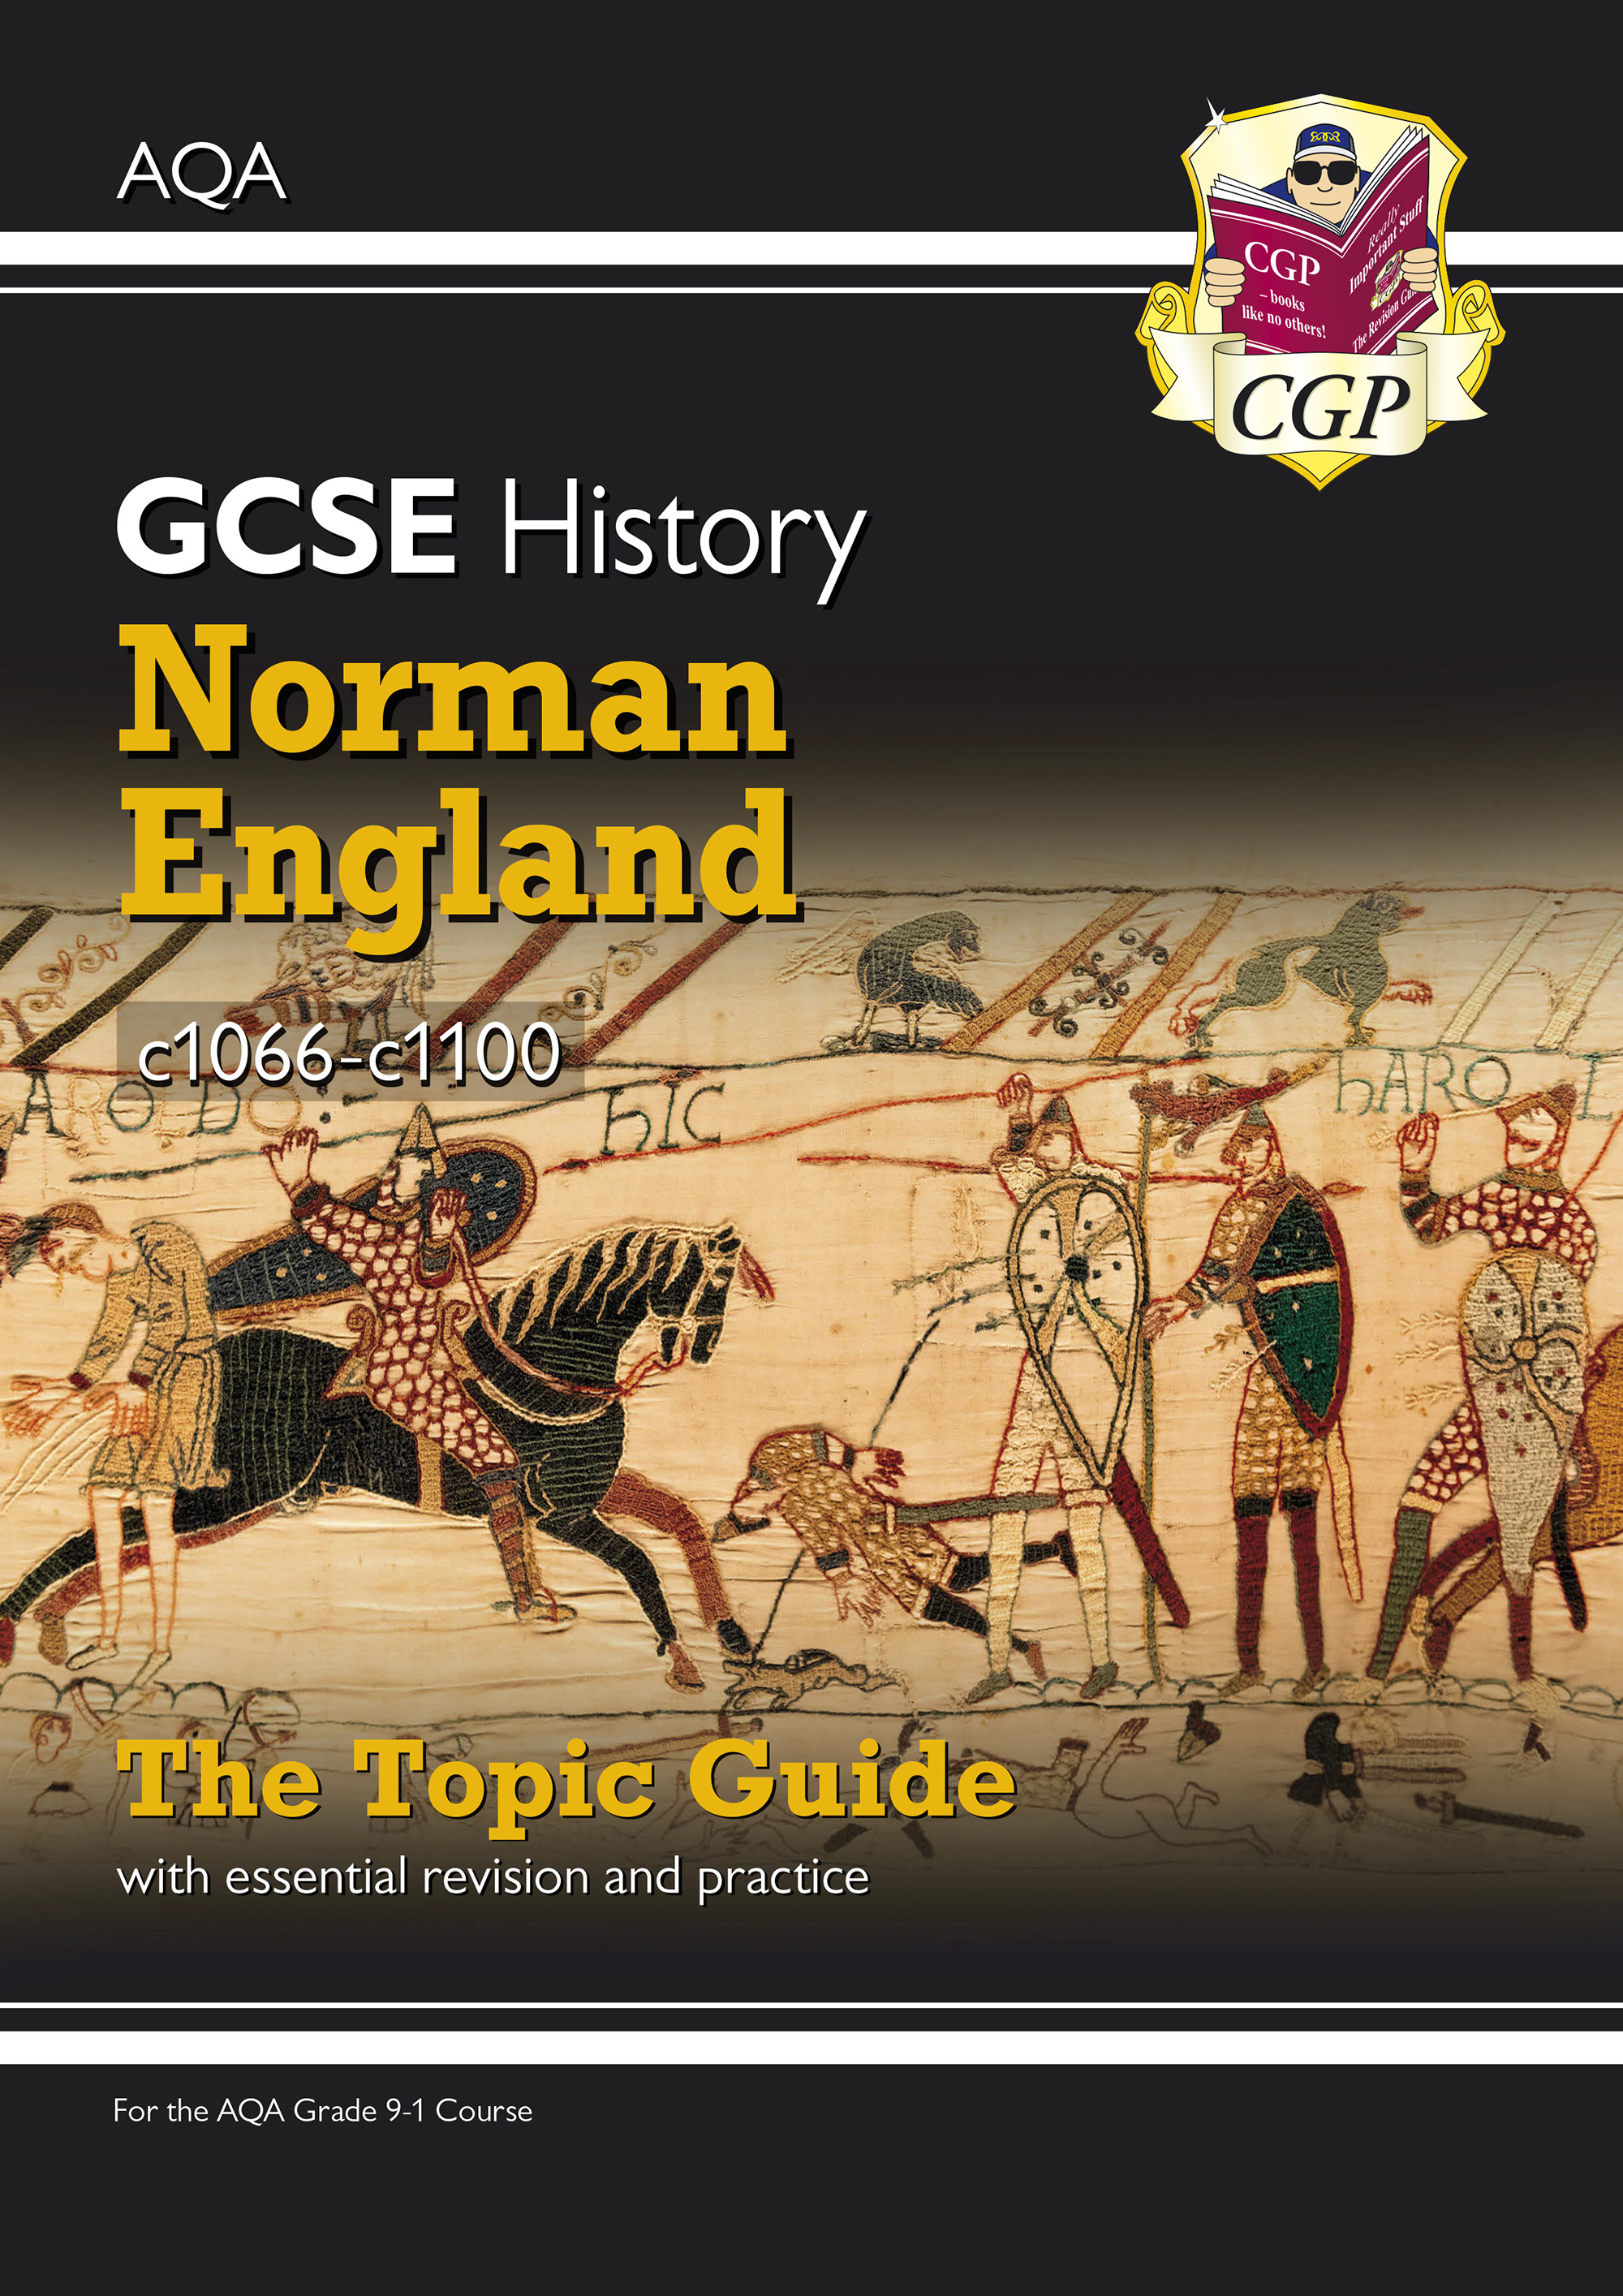 HANEO41D - Grade 9-1 GCSE History AQA Topic Guide - Norman England, c1066-c1100 Online Edition